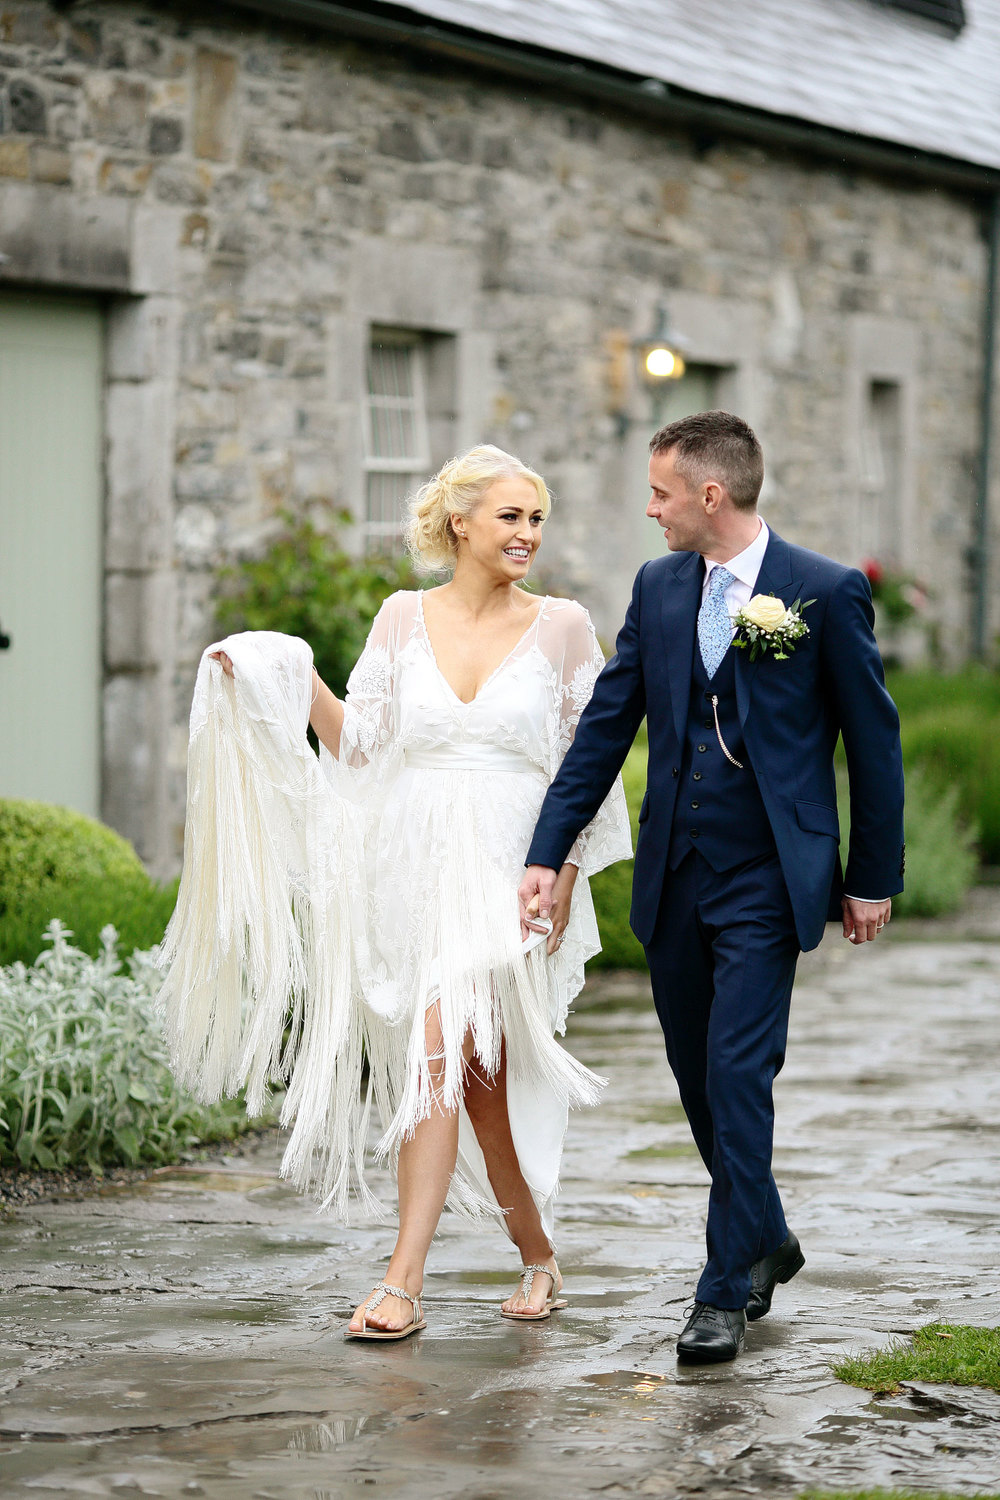 Ballymagarvey wedding photos 37.jpg